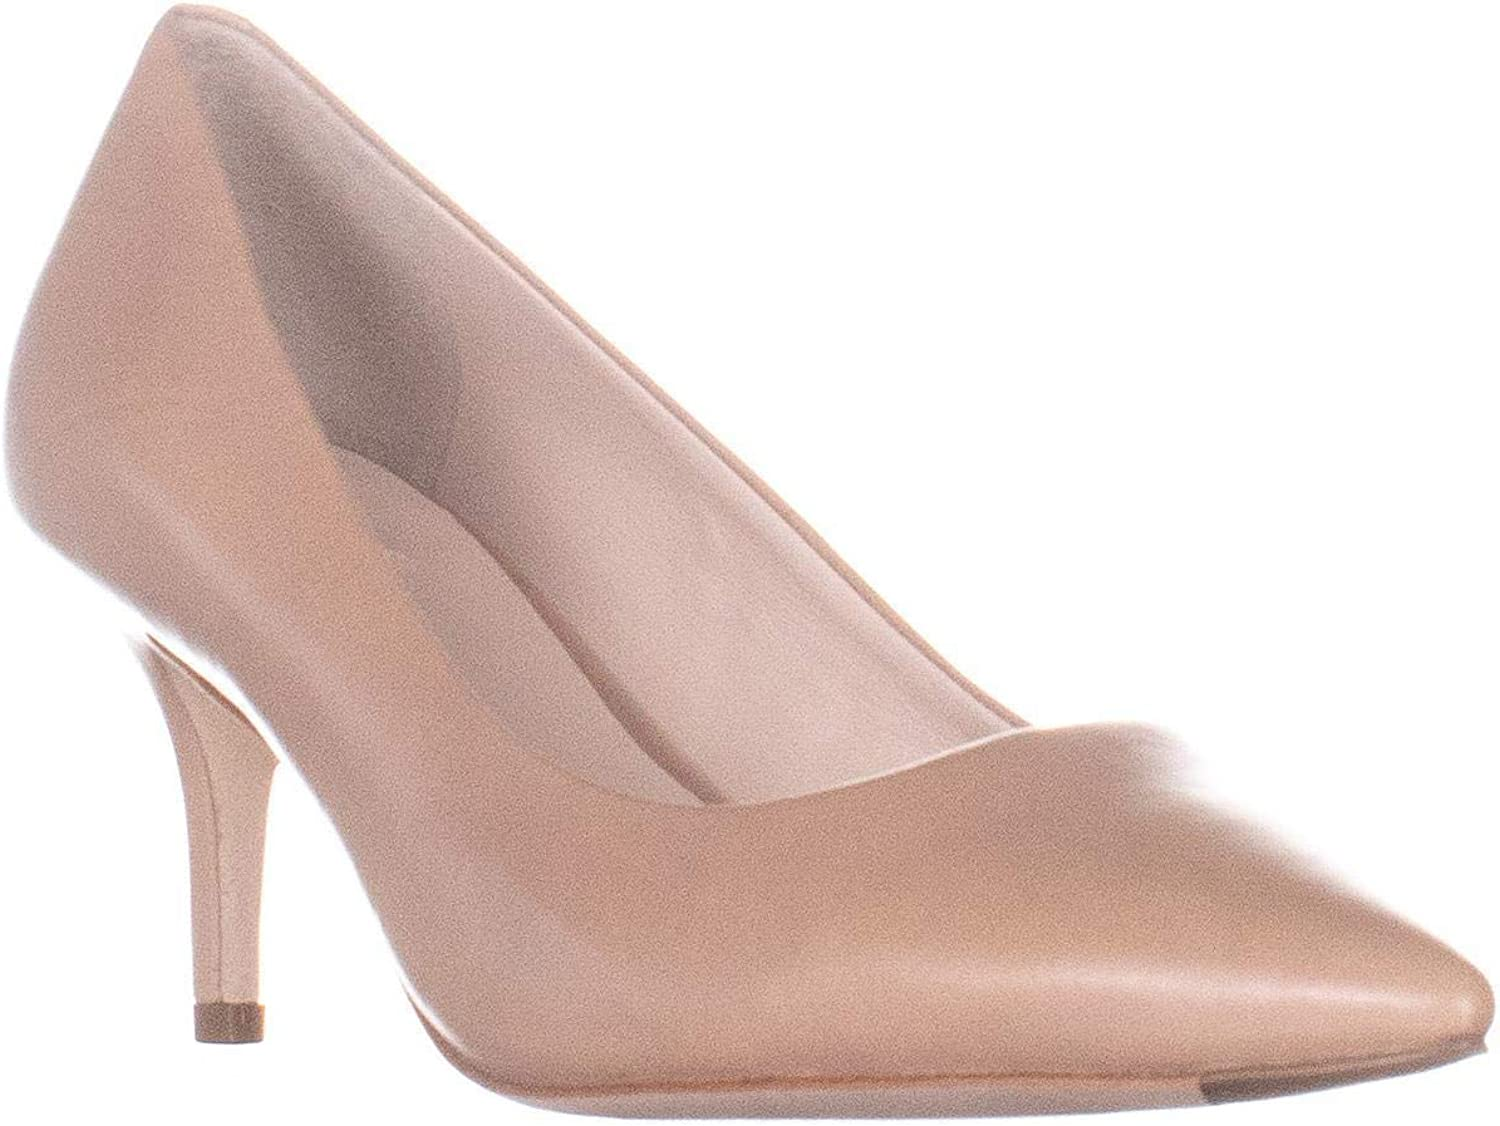 Cole Haan Women's G.Os Vesta Pump 65Mm W12495 Nude Leather M